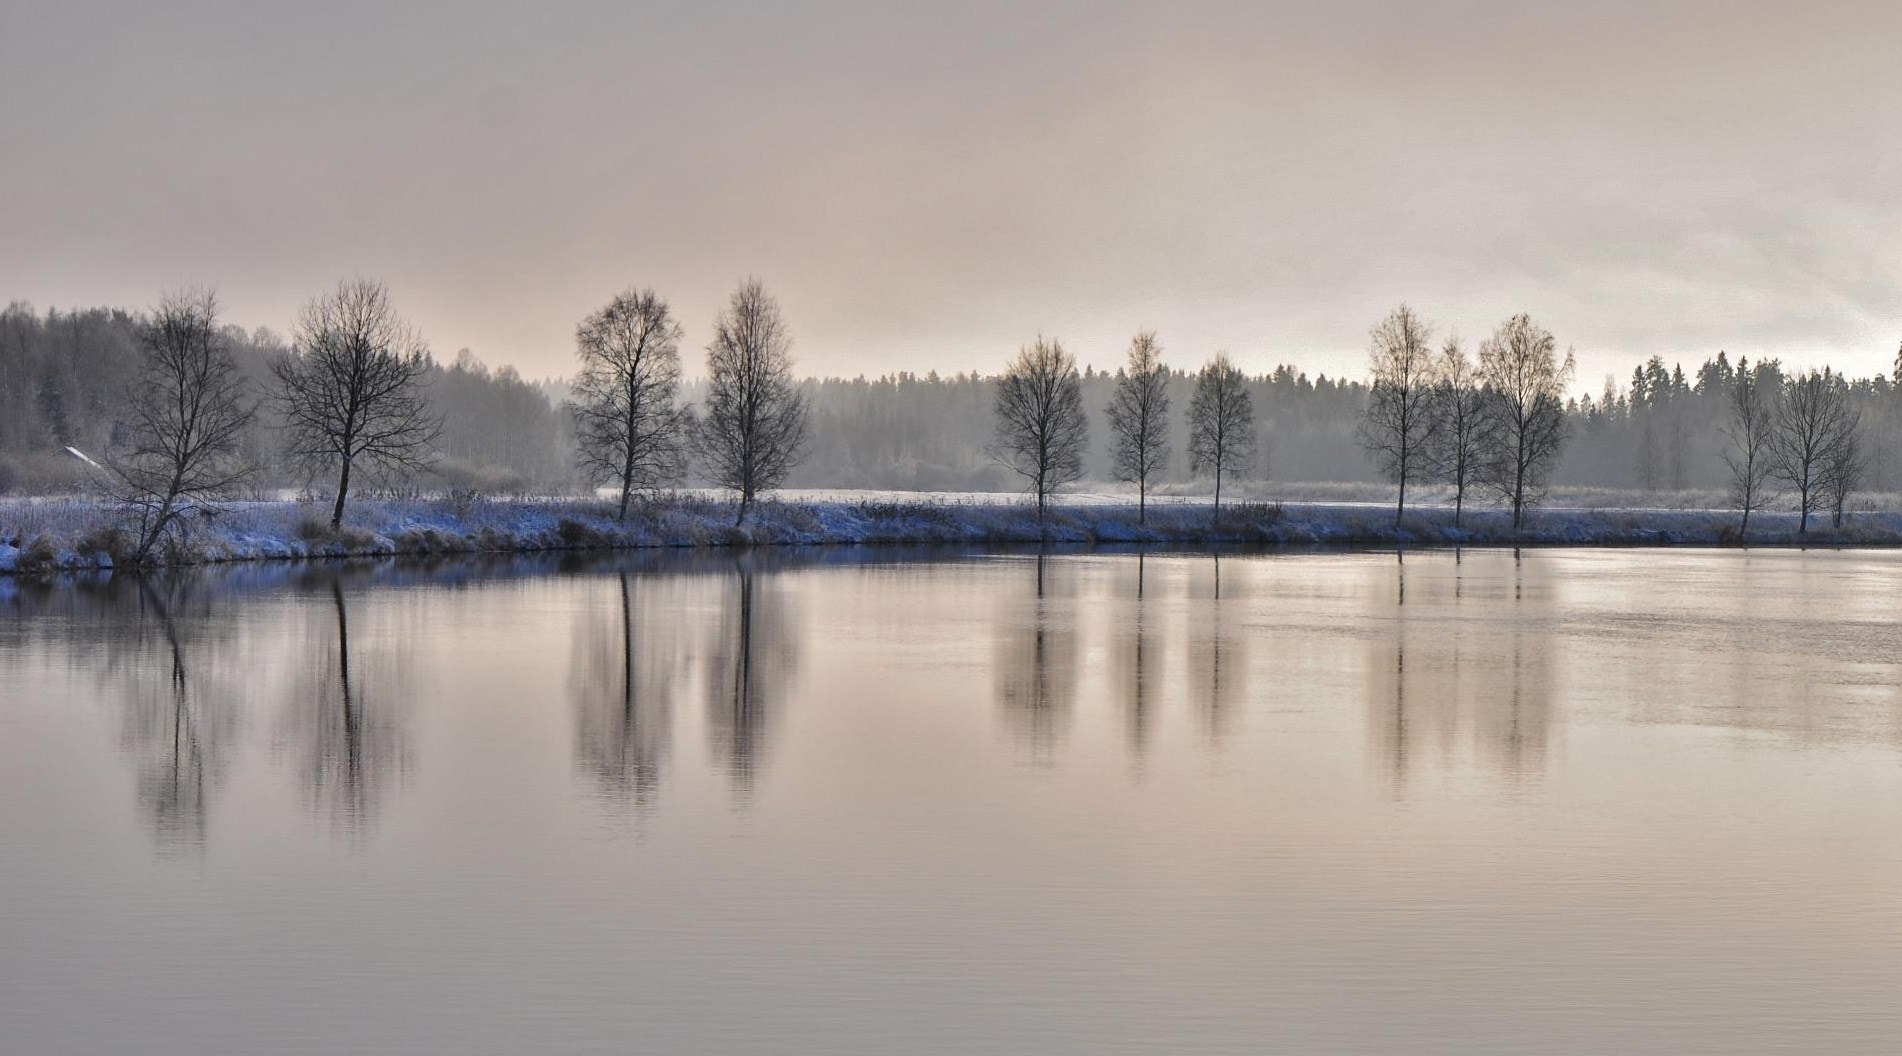 Photograph river in winter by Seppo Autio on 500px